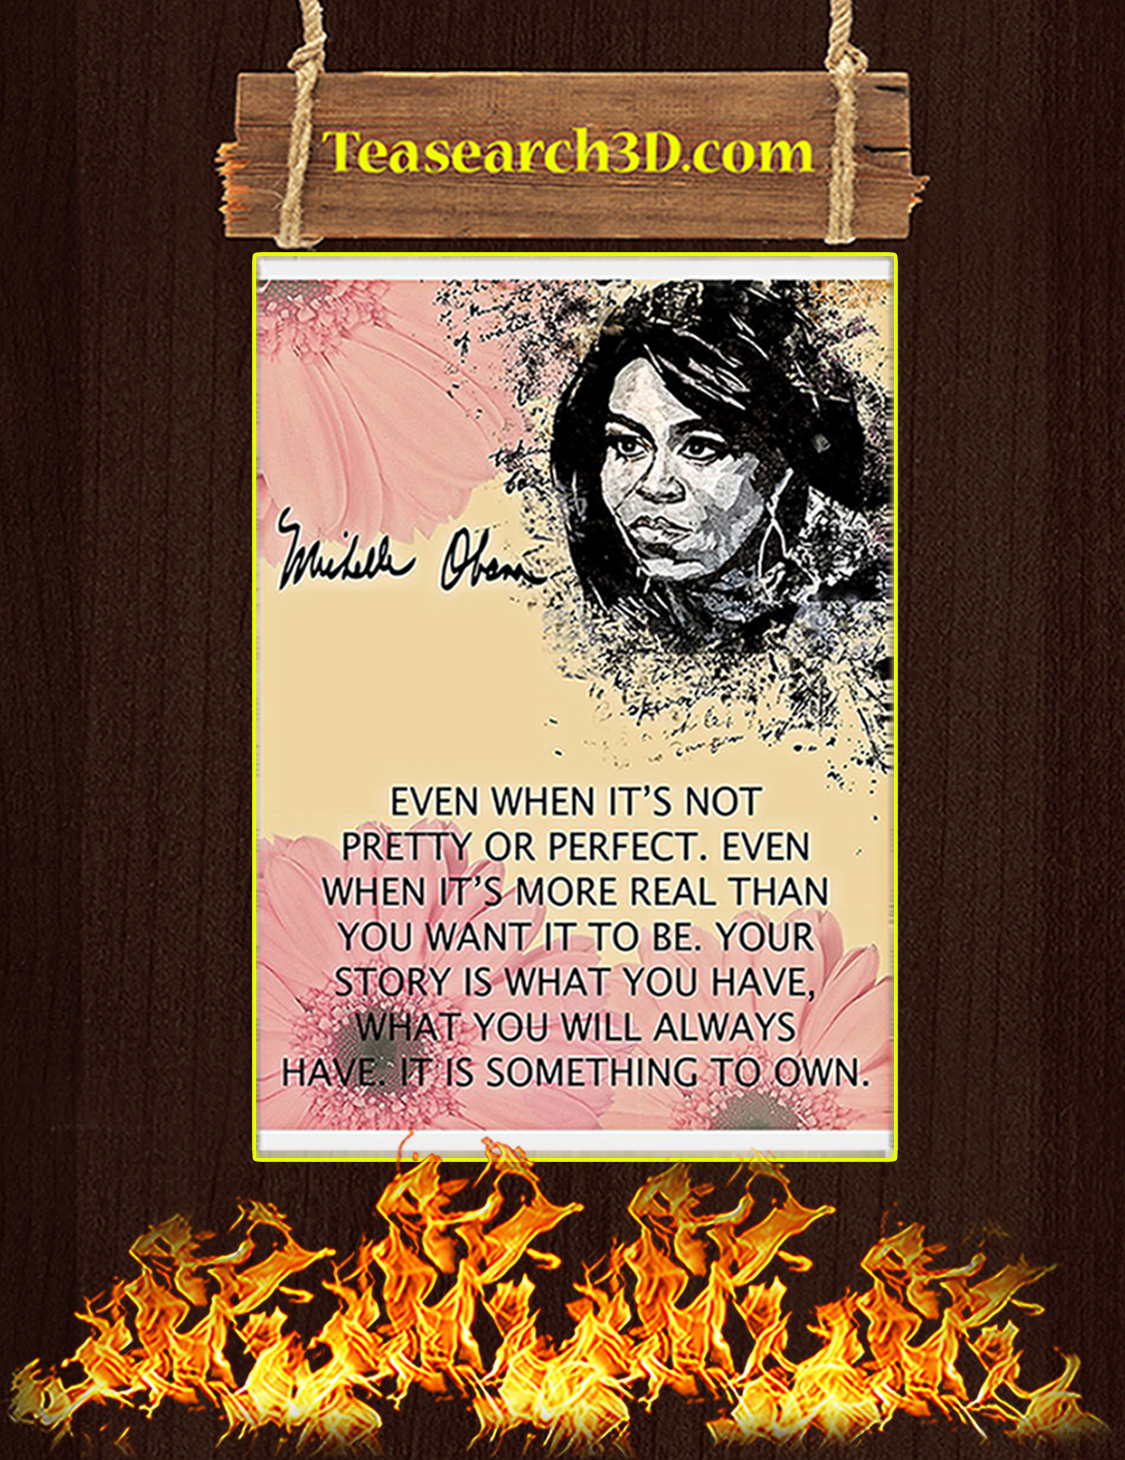 Michelle obama even when it's not pretty or perfect poster A3